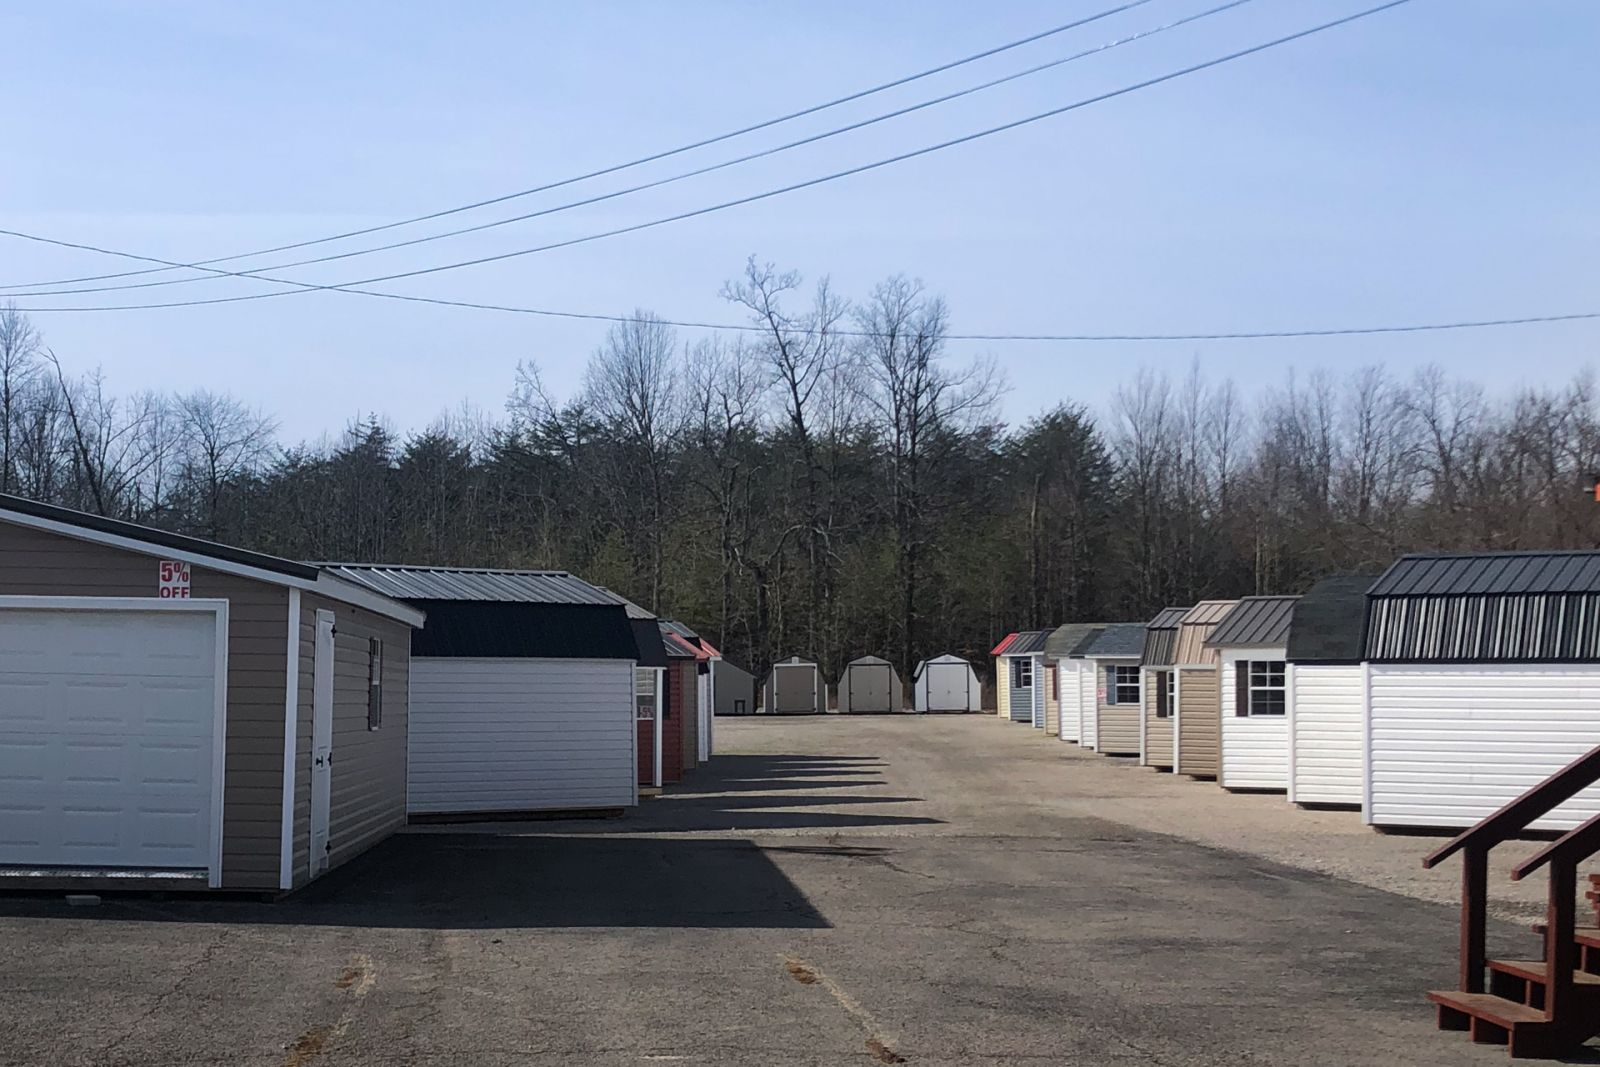 Examples of sheds for sale in Nashville, TN